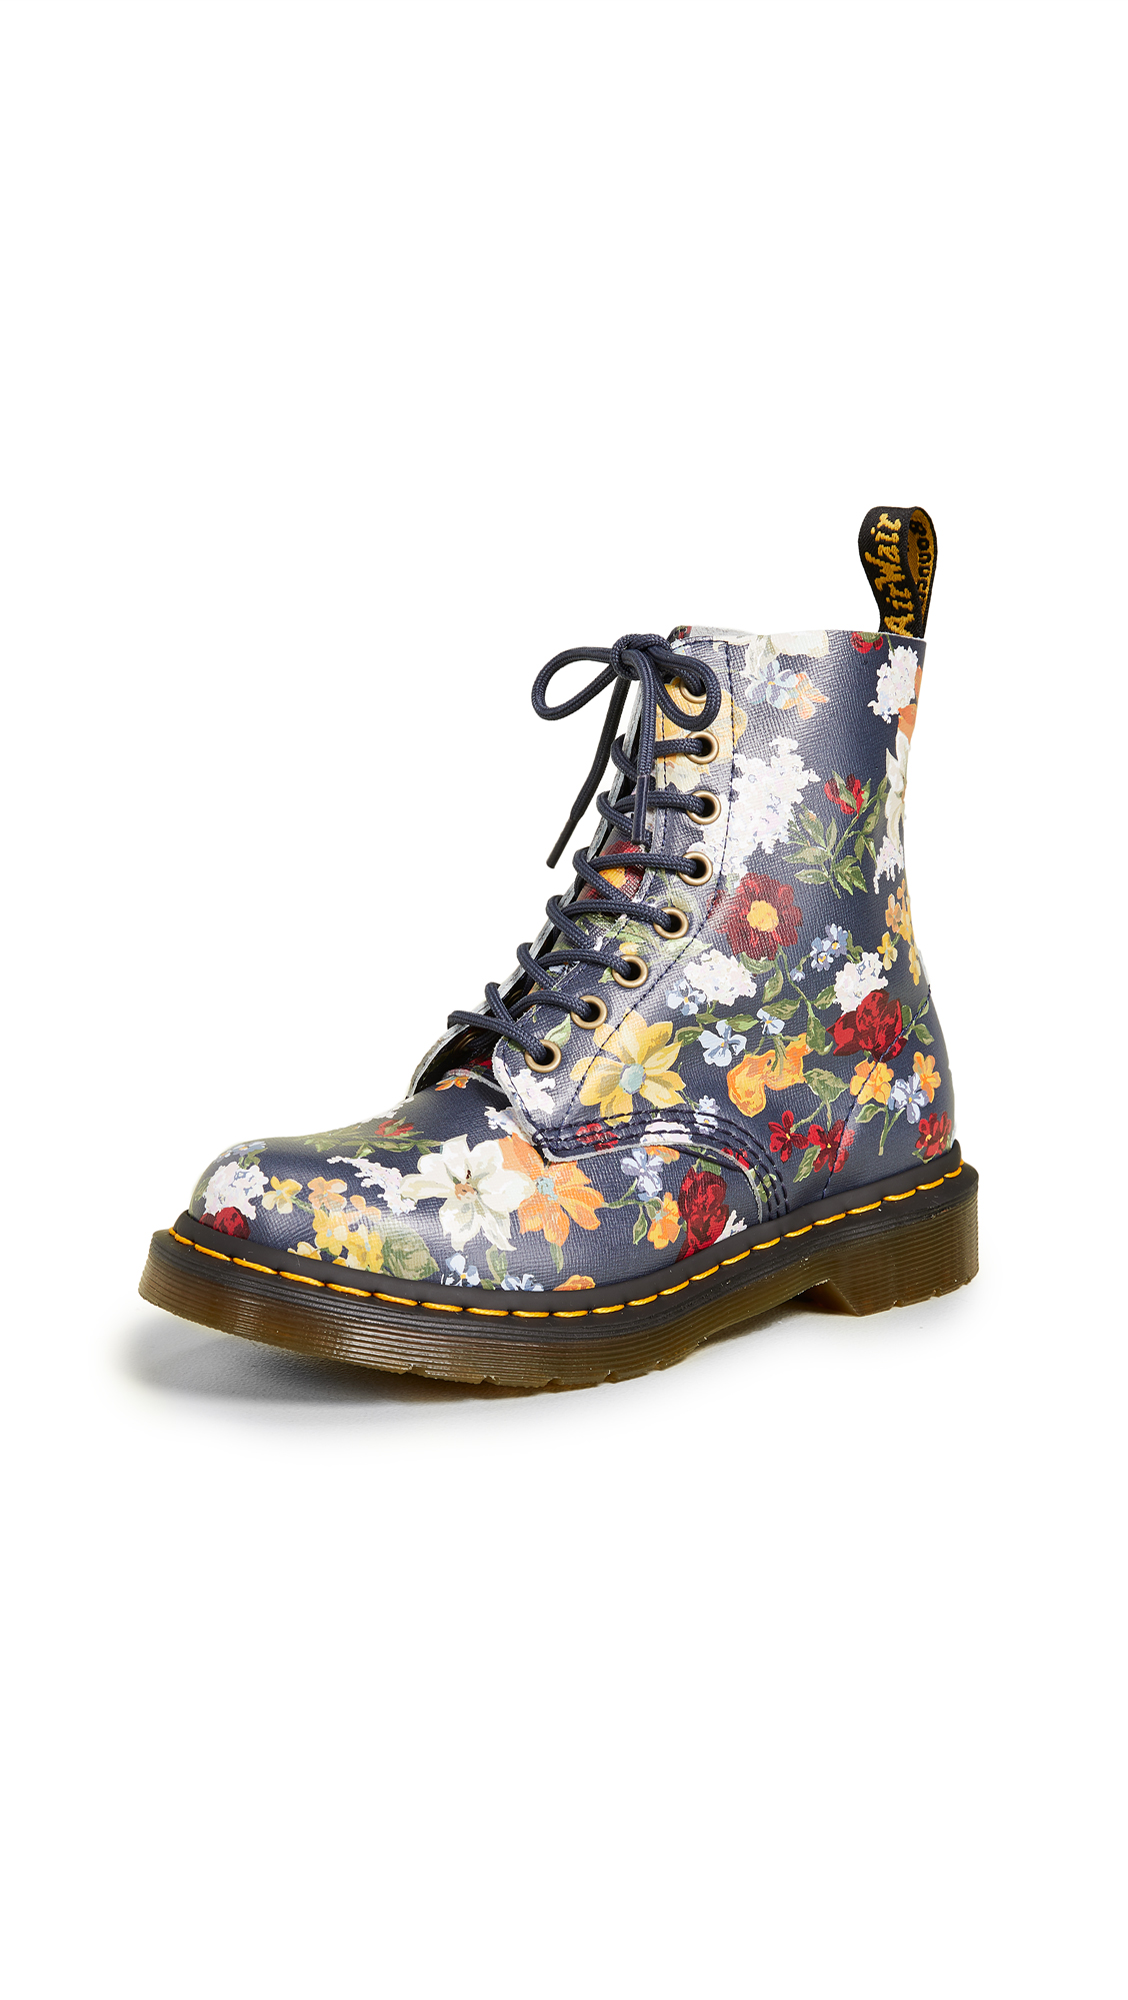 Dr. Martens 1460 Pascal 8 Eye Boots - Navy Multi